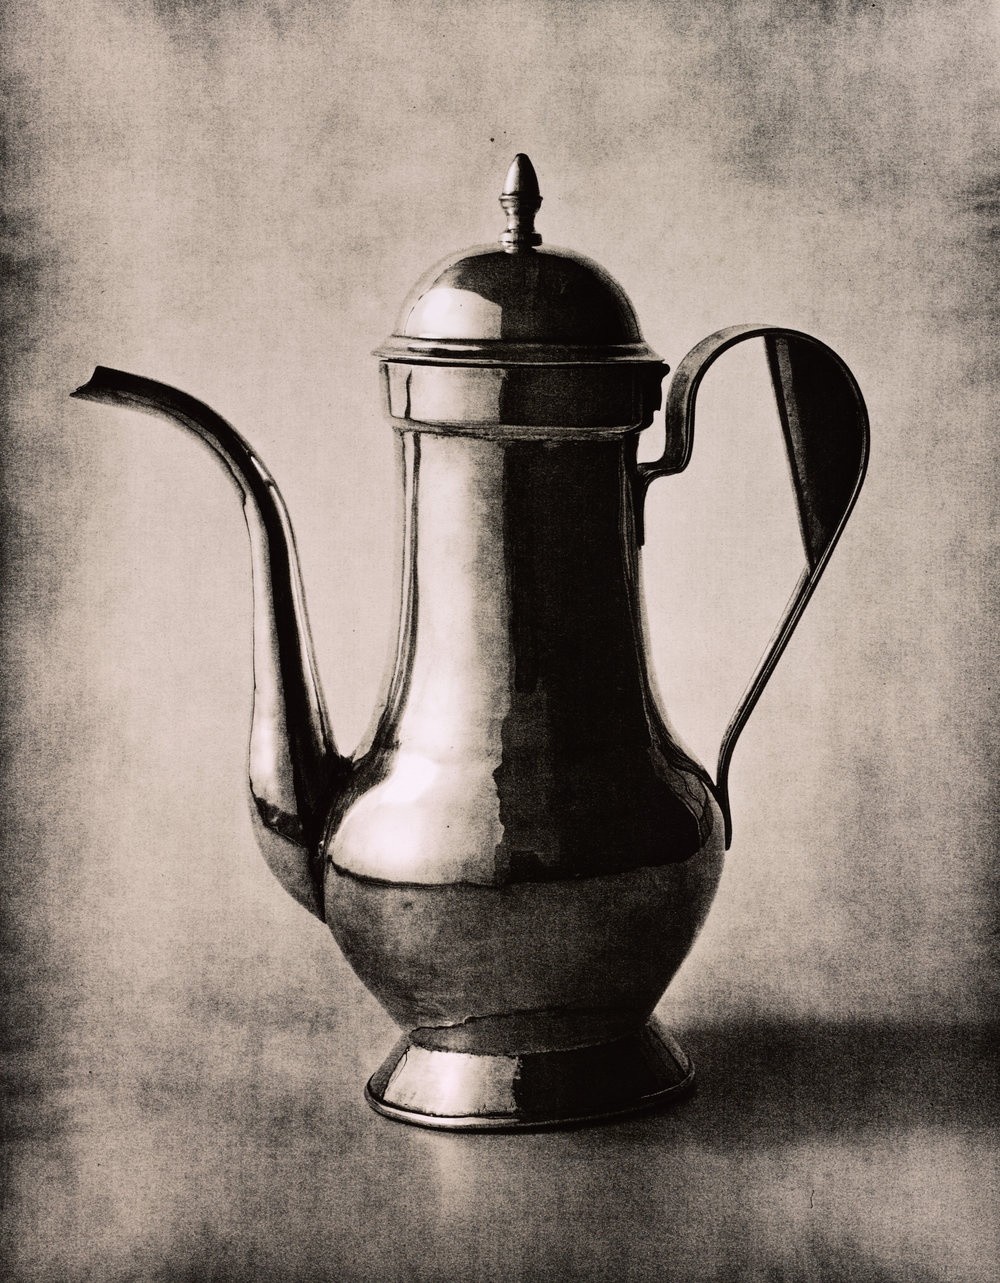 Coffee Pot , New York, 2007 Gelatin silver print © The Irving Penn Foundation